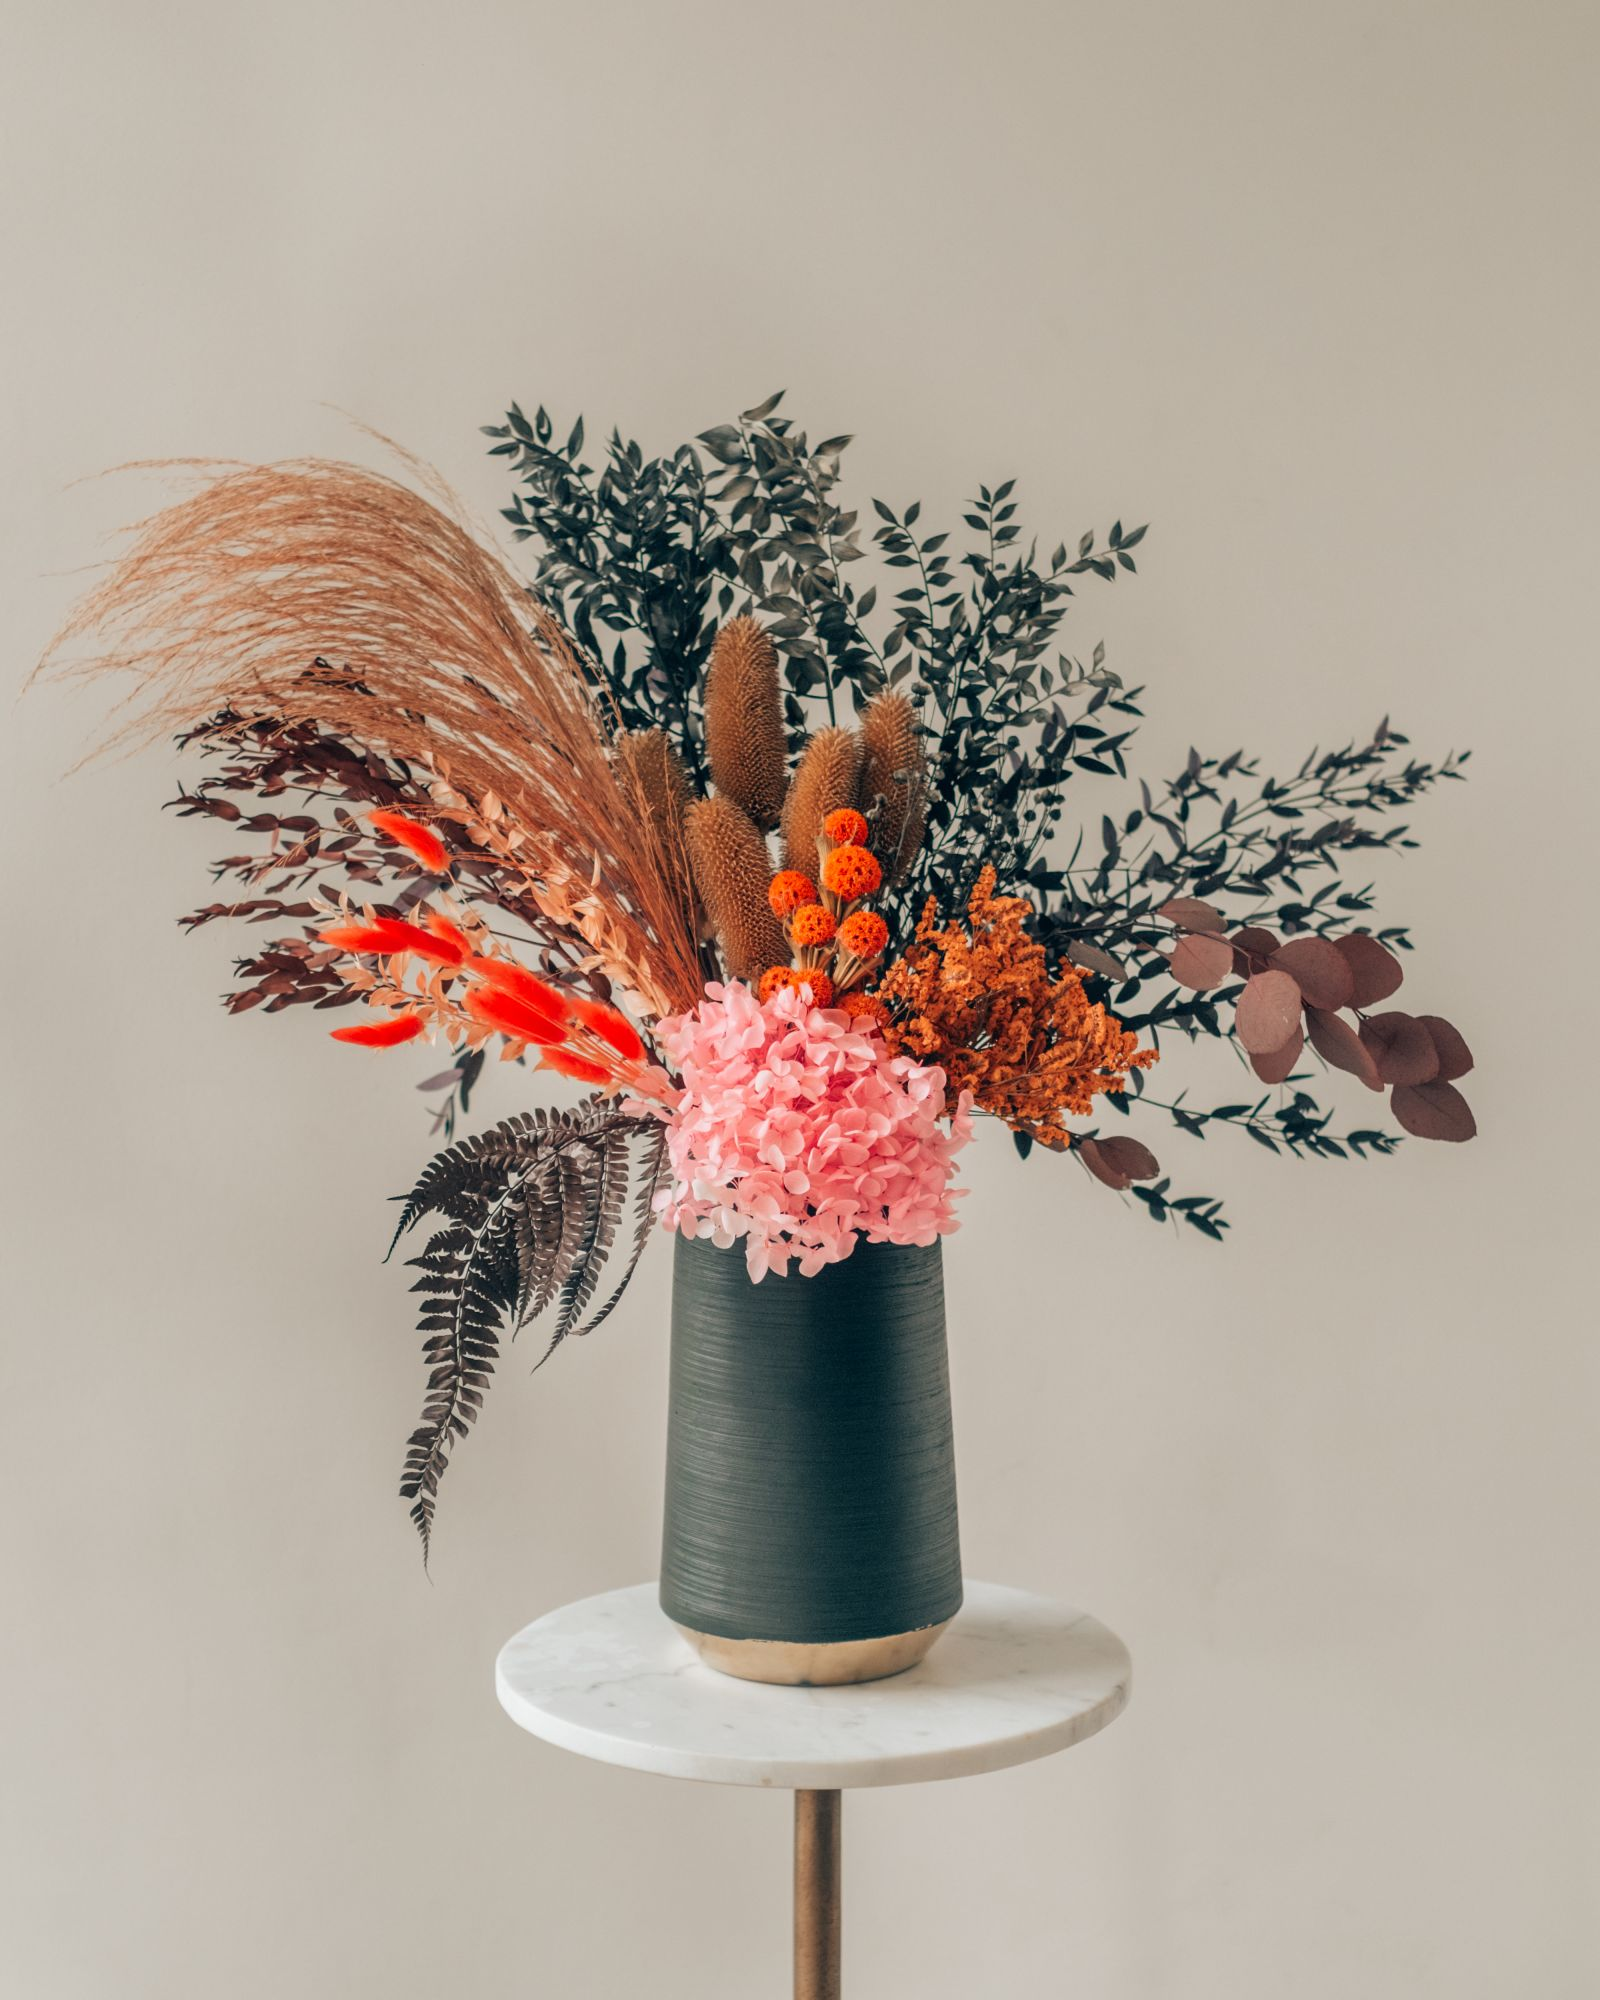 Tatler Home Design Tips: Why You Should Invest in Dried Flowers